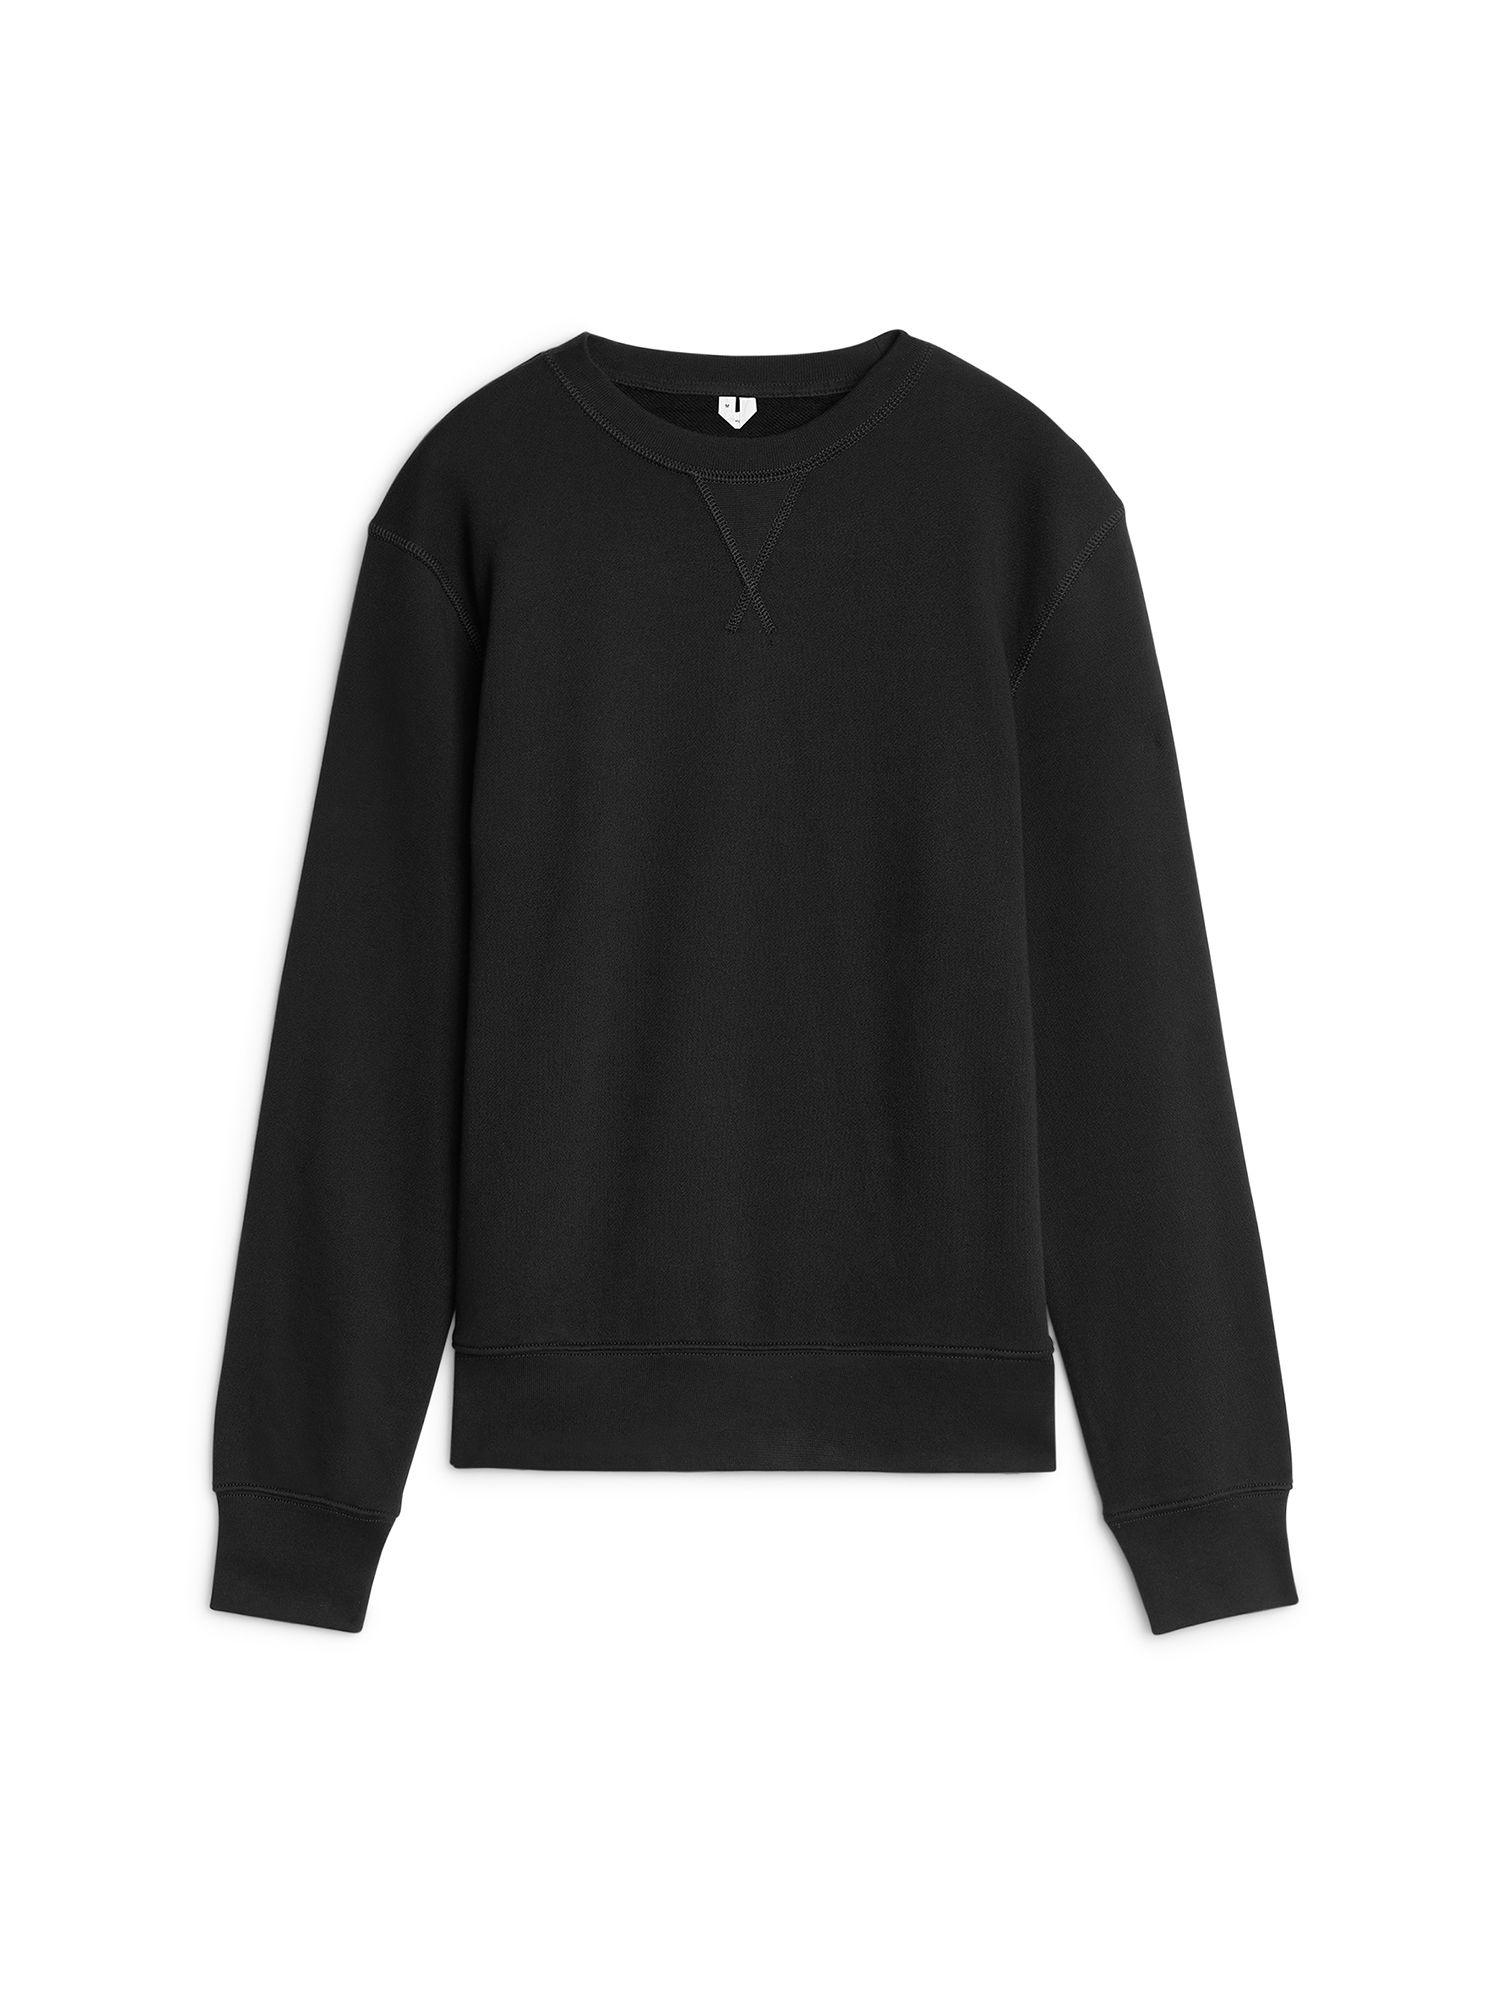 Fabric Swatch image of Arket 340 gsm french terry sweatshirt in black